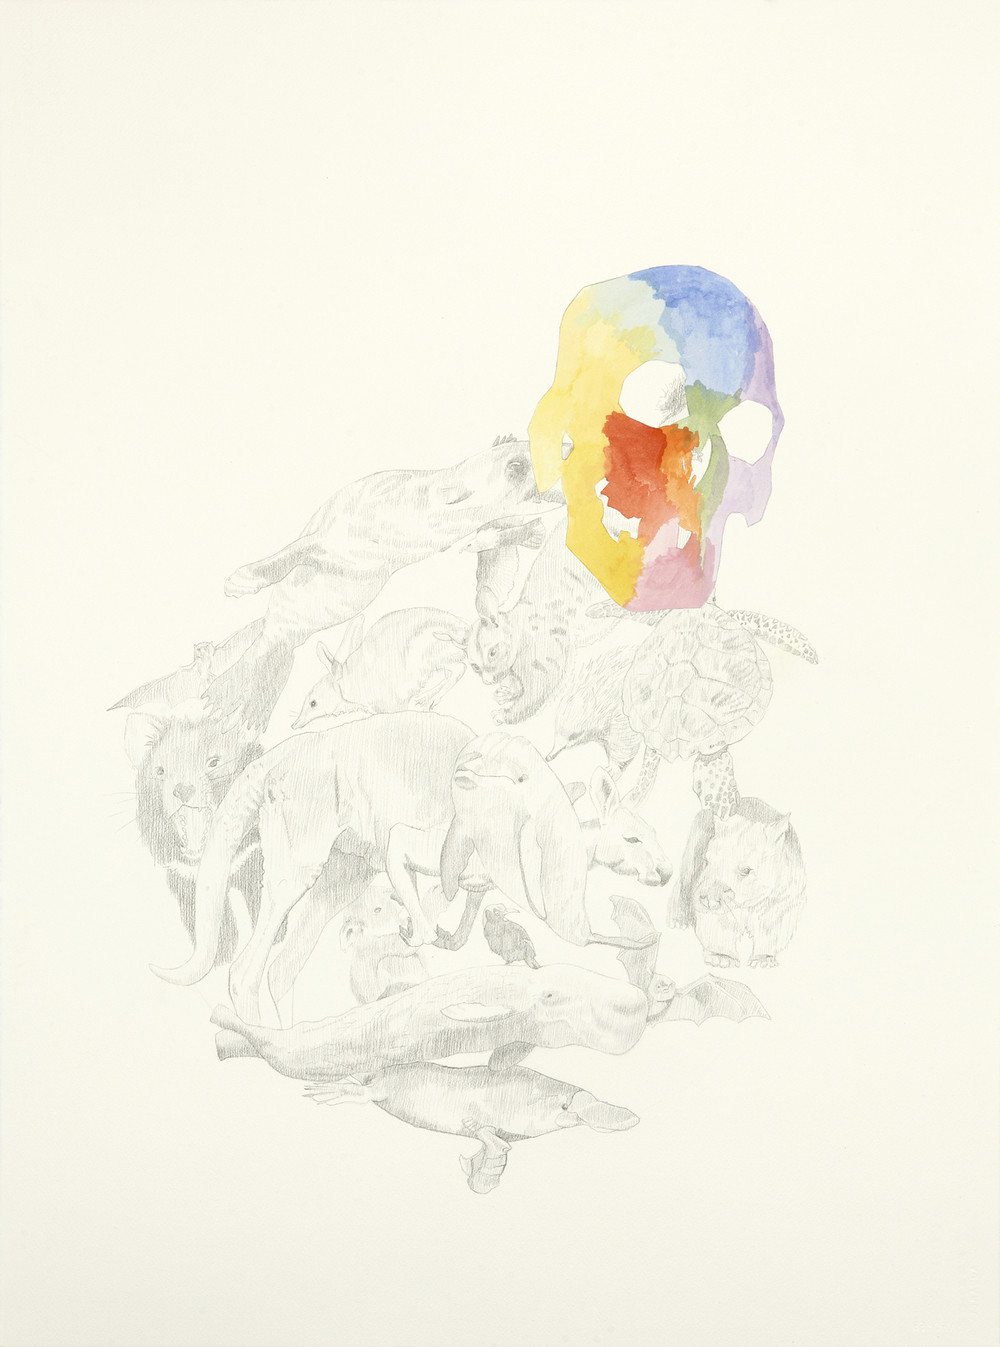 Skull Centric, 2011, Watercolour and pencil on paper, 56.0 x 76.0 cm, Photo: Sam Scoufos